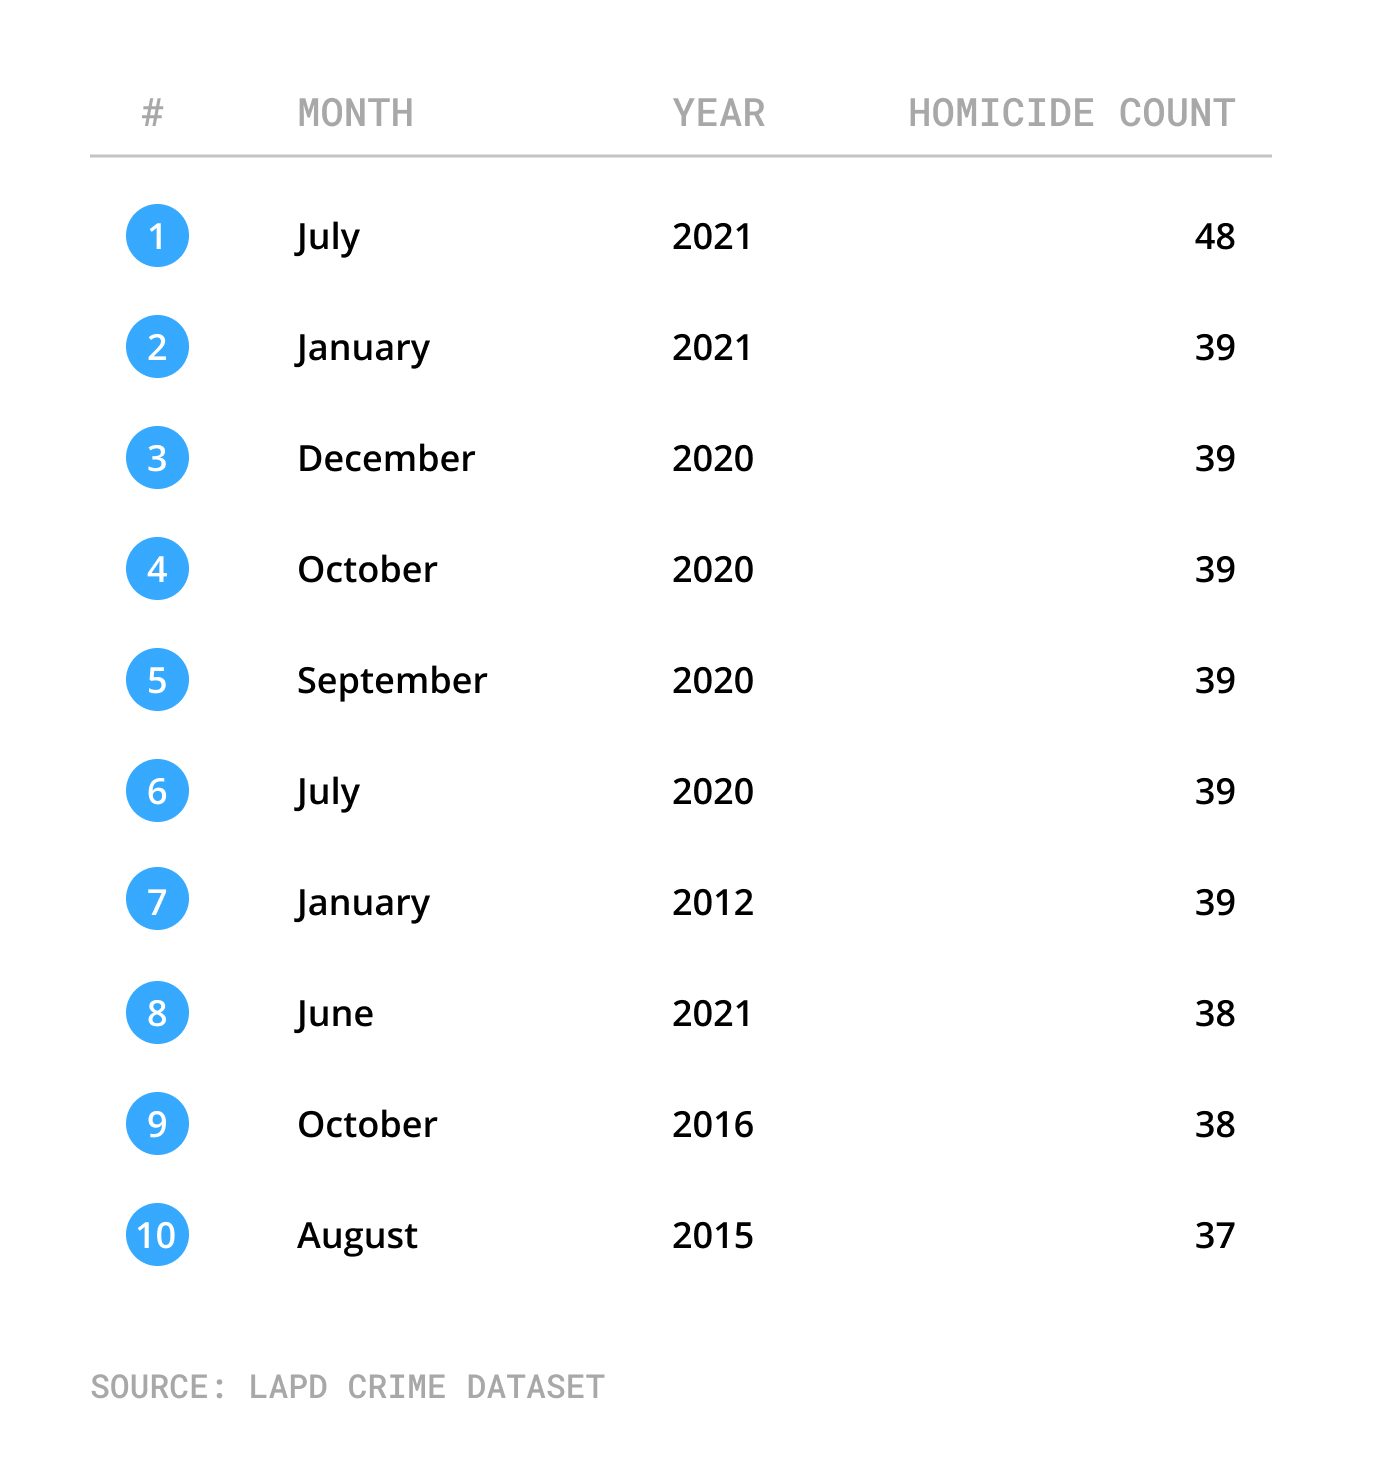 Table with highest homicide months